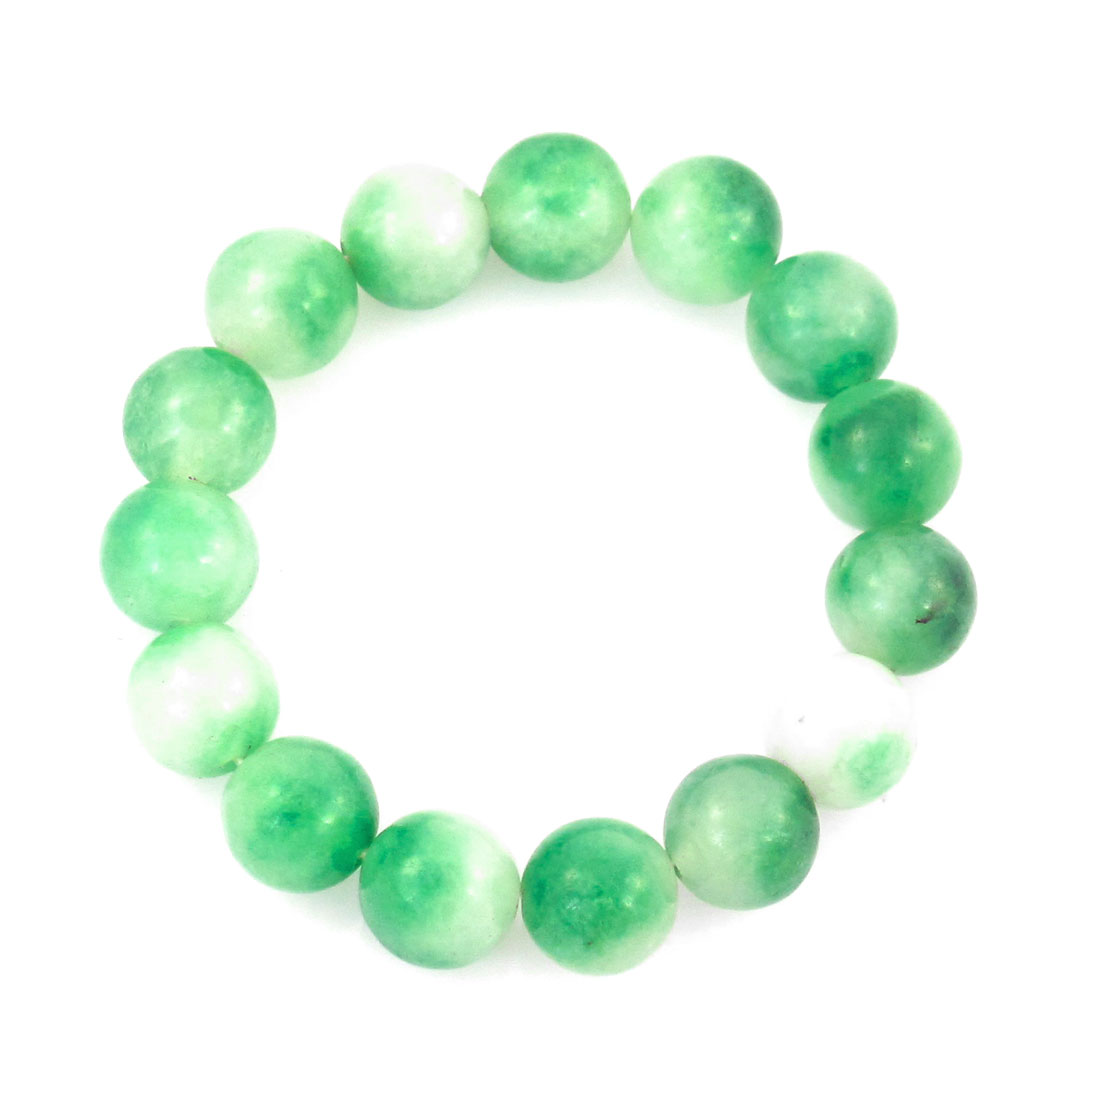 Green Stretch Plastic Beaded Bracelet Bangle Chain Decor for Lady